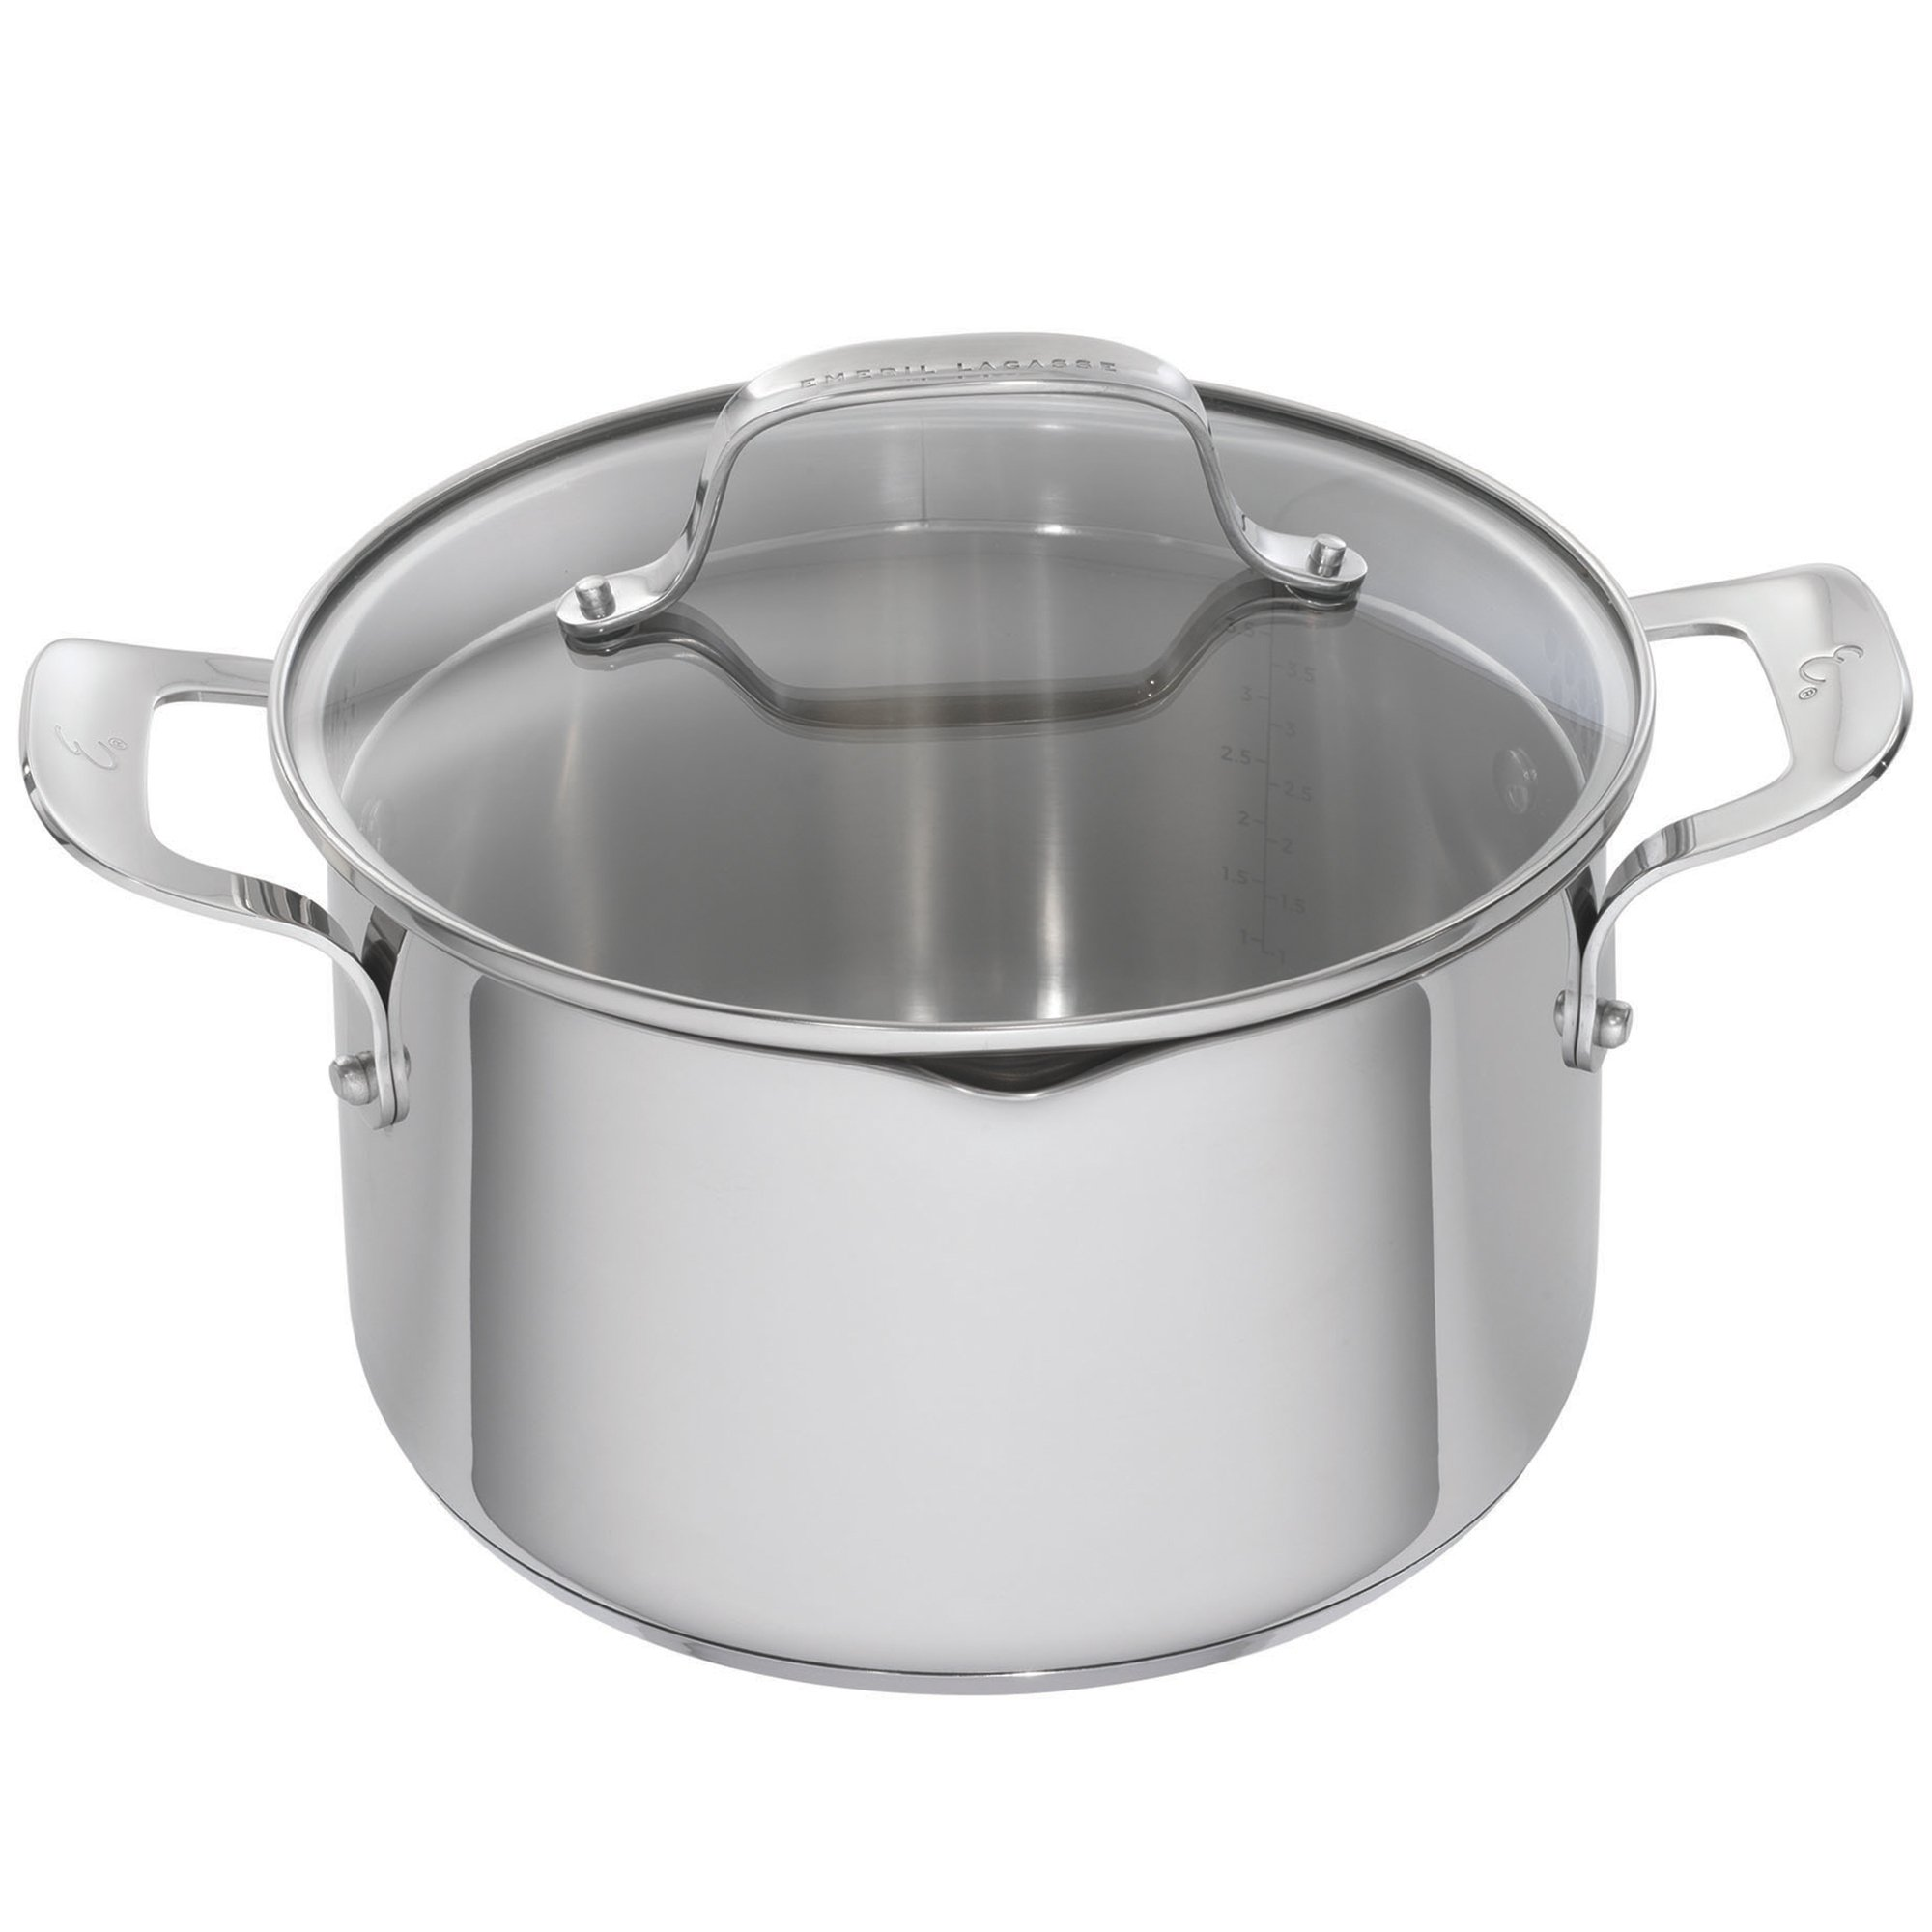 Emeril Lagasse 62958 Stainless Steel Dutch Oven, 5-Quart, Silver